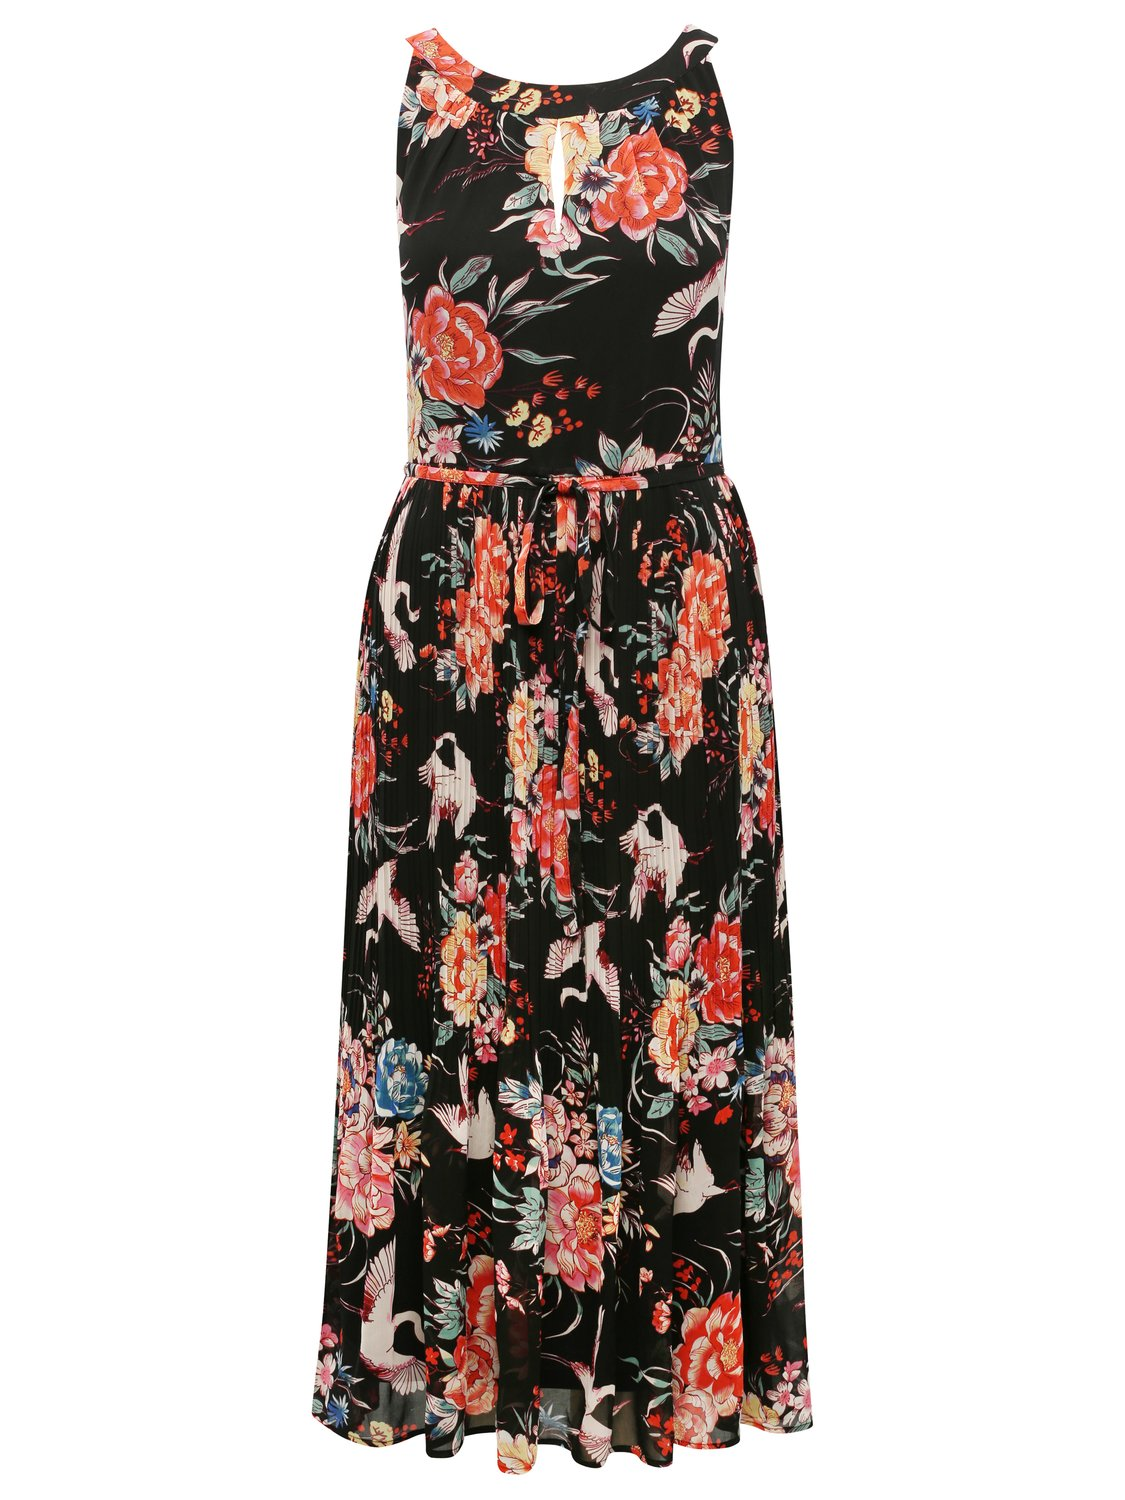 Women's Ladies boutique sleeveless bird print tie front fit and flare keyhole pleated skirt dress